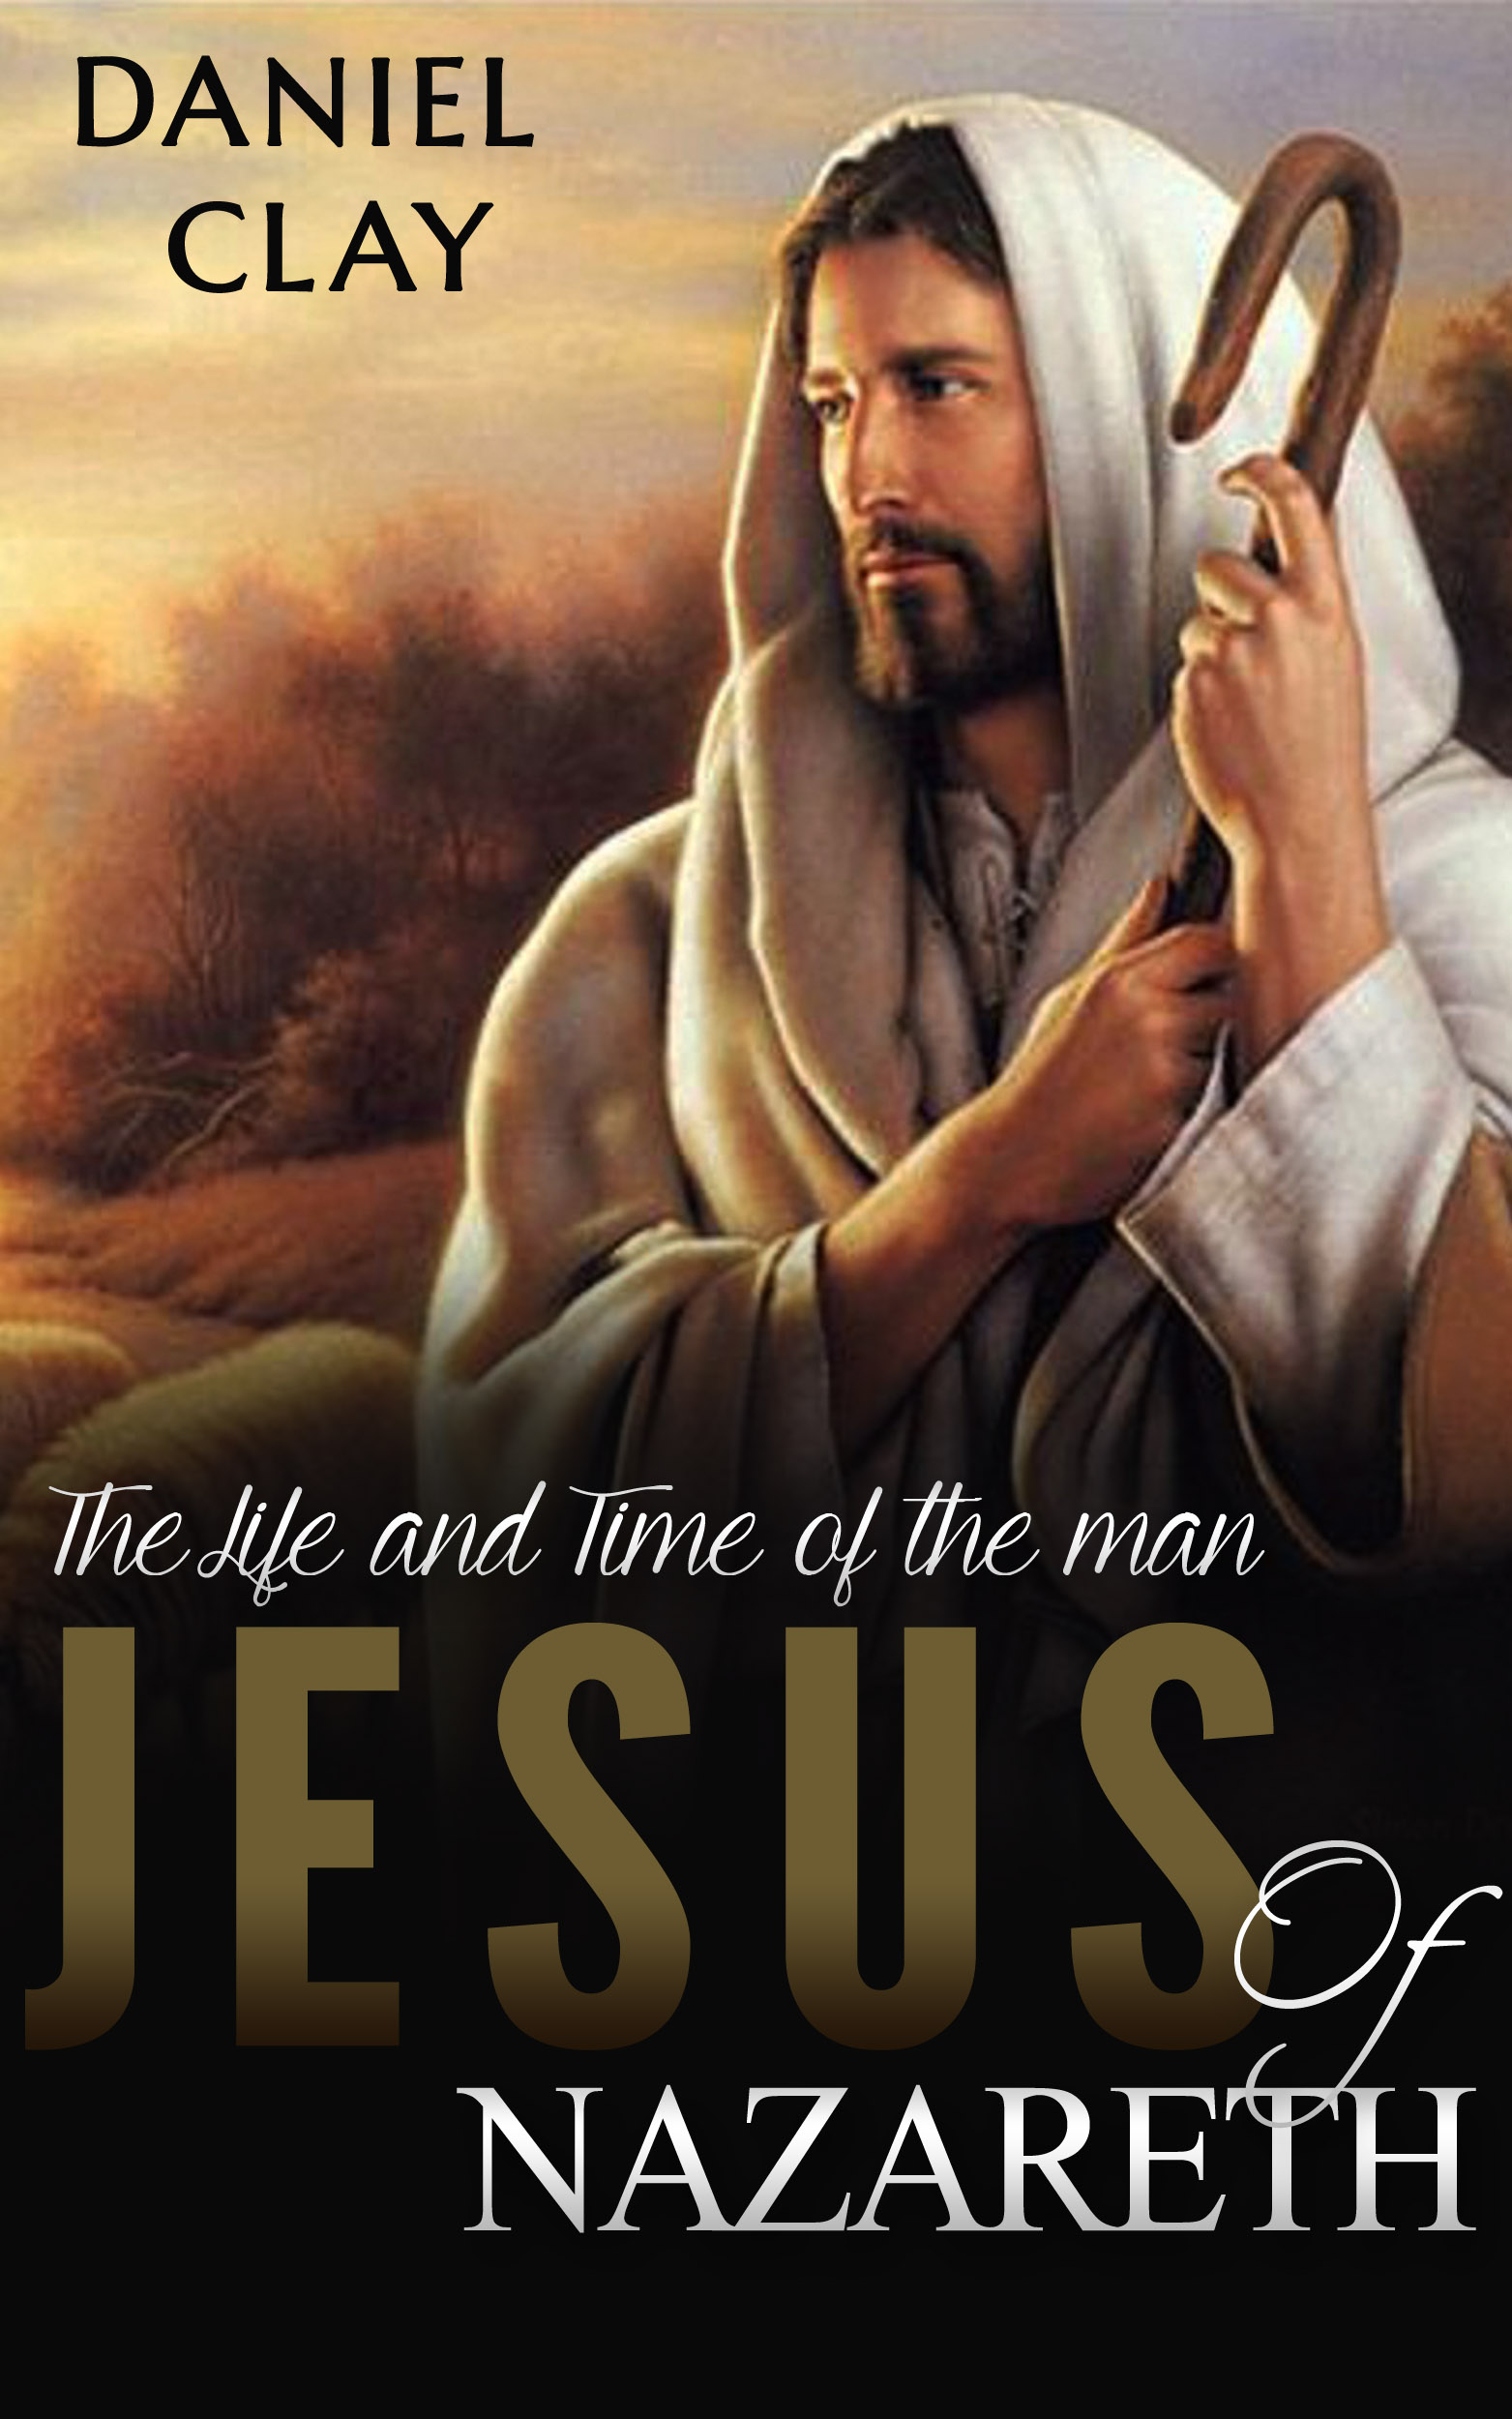 The Life and Time of the Man Jesus of Nazareth